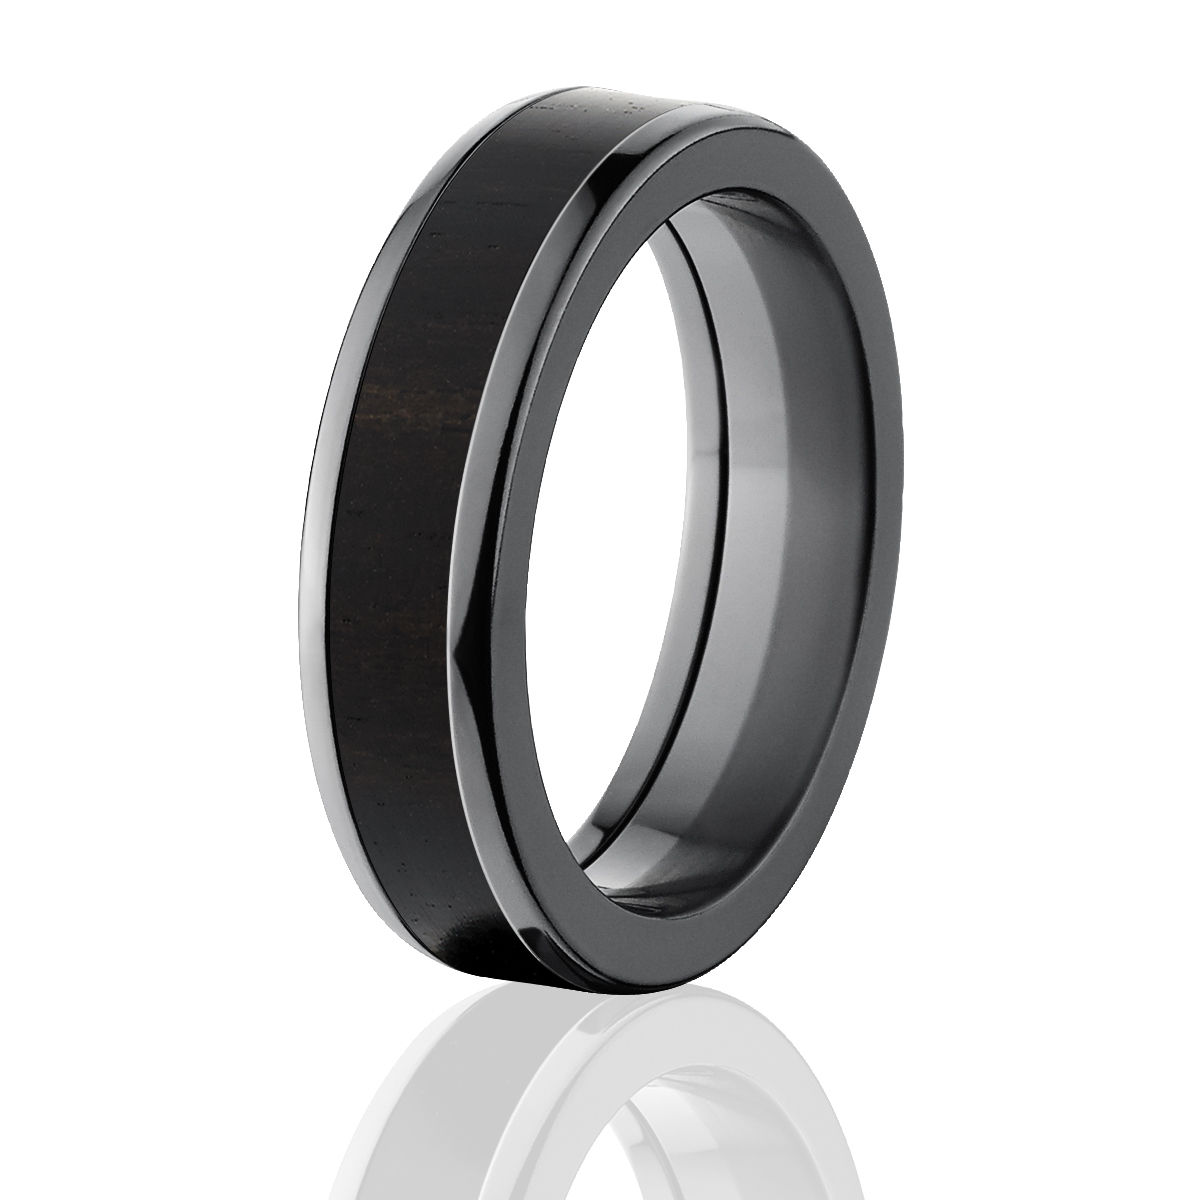 African Blackwood Bands: Black Rings With Wood, African BlackWood Wedding Band